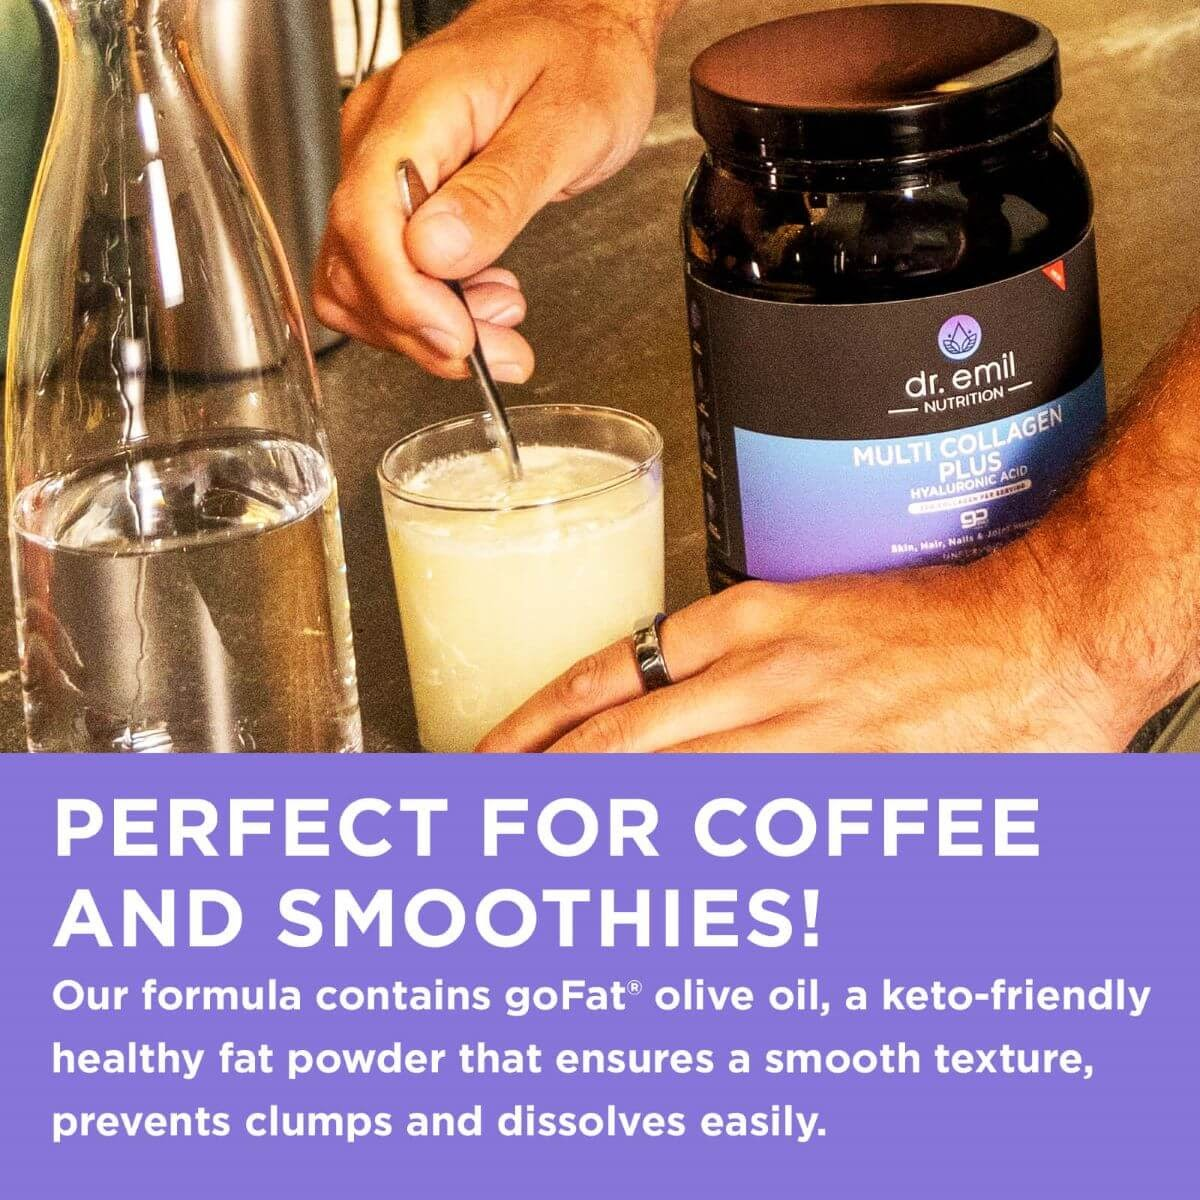 Making Iced Coffee with Dr. Emil Nutrition's Multi Collagen Plus Powder